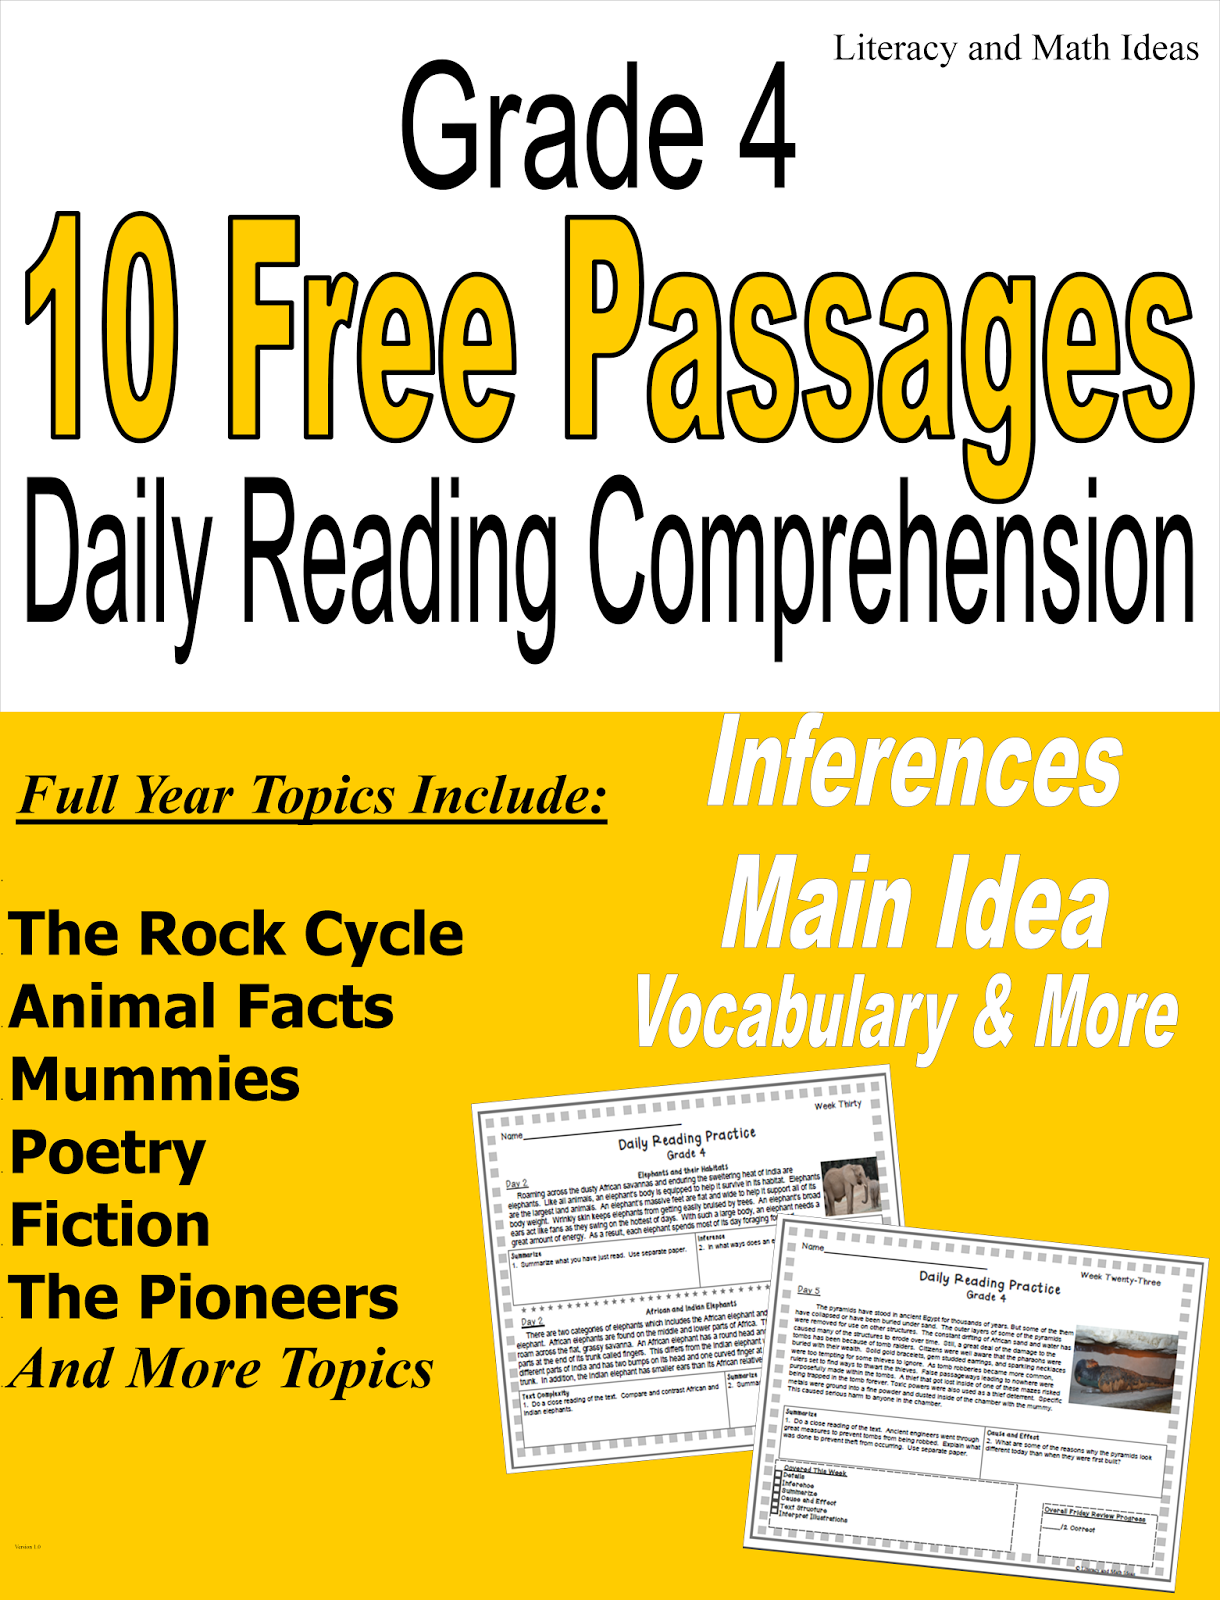 Literacy Amp Math Ideas Free Grade 4 Daily Reading Comprehension Passages